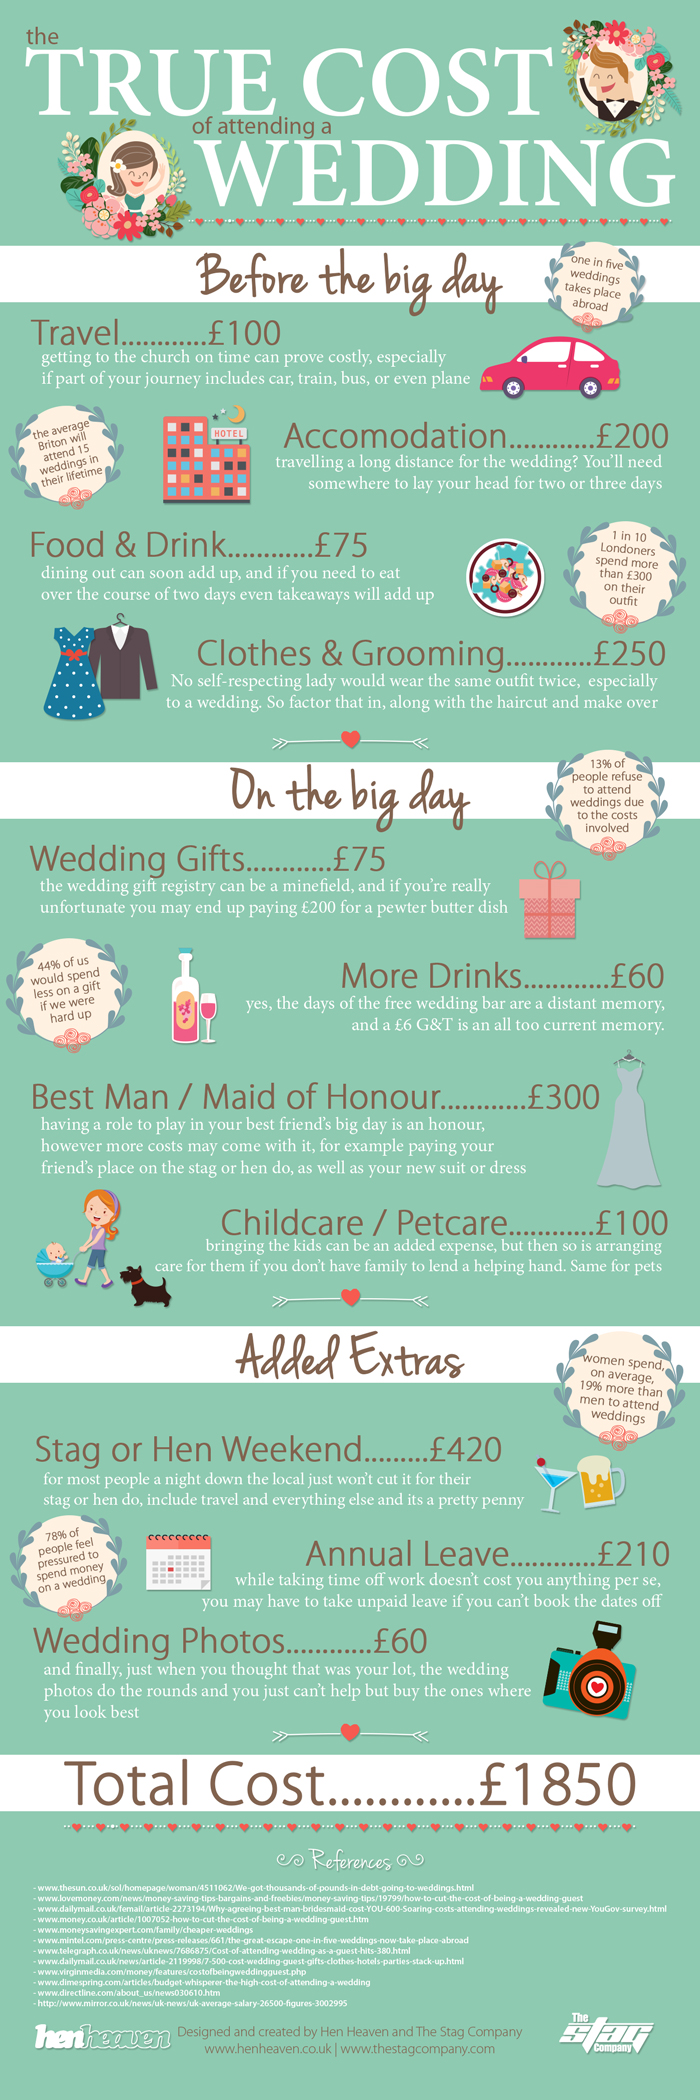 Costs of weddings